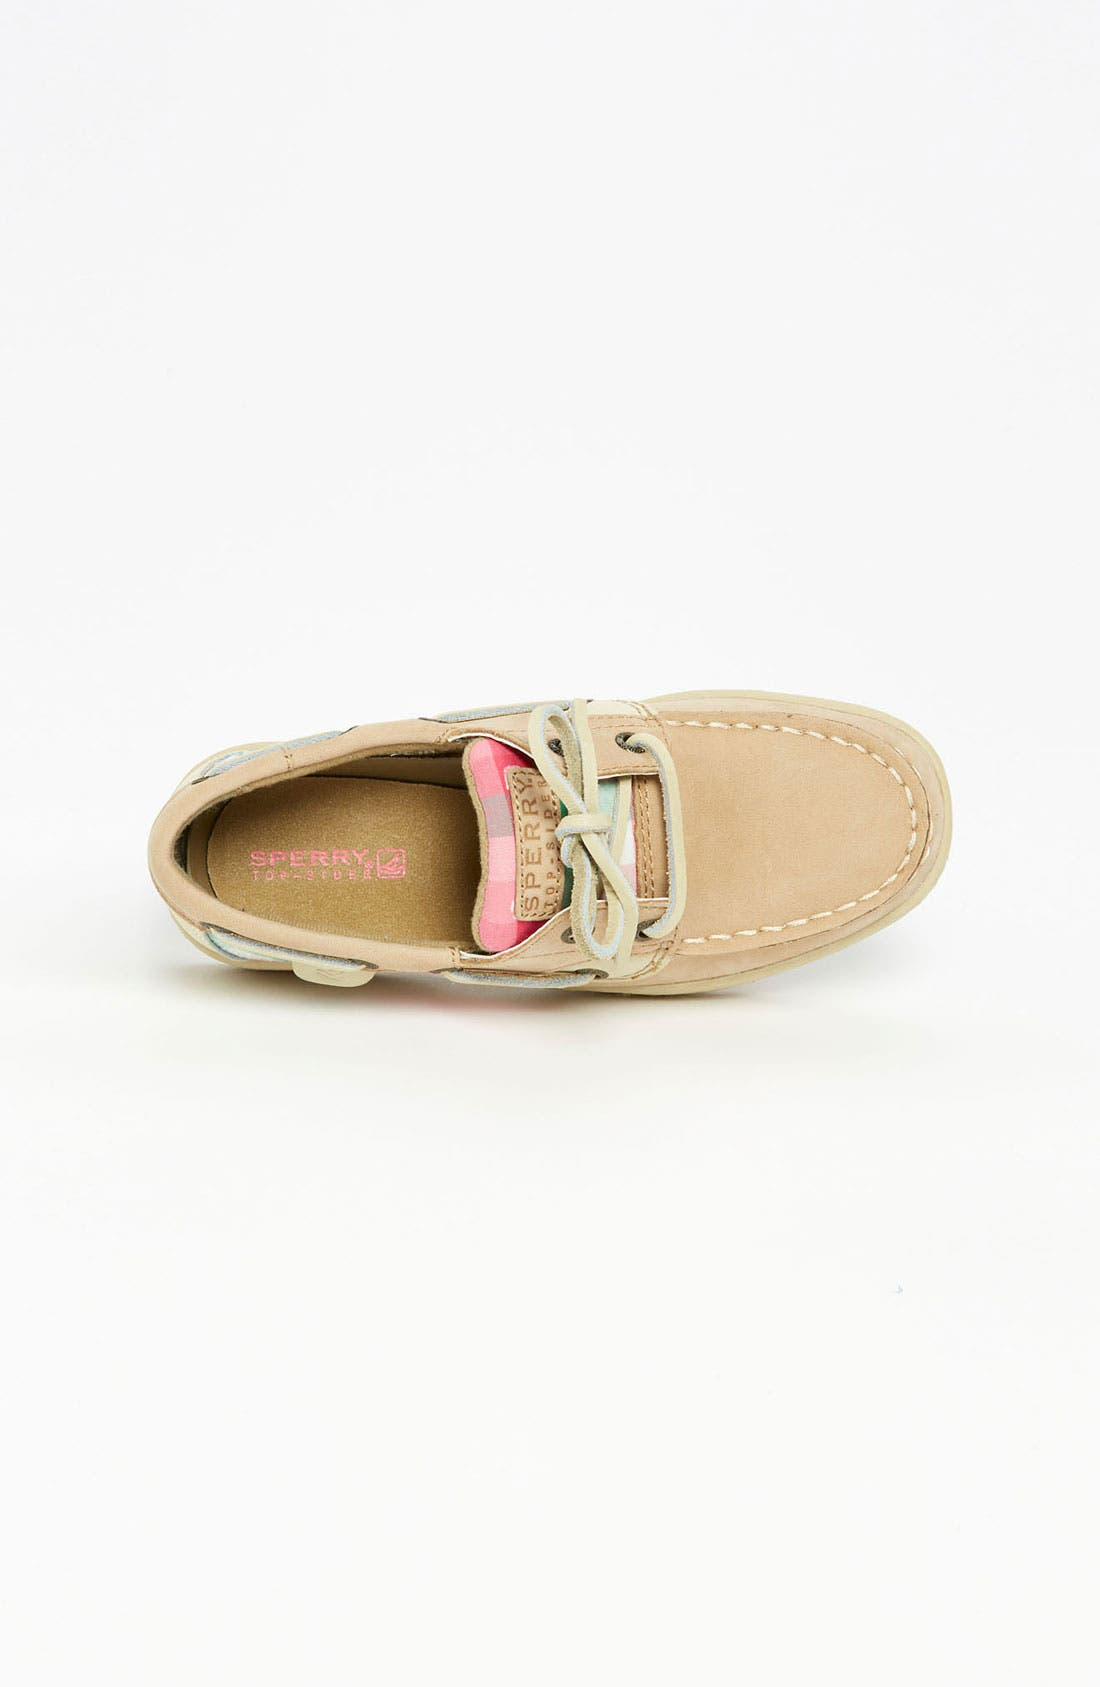 Sperry Top-Sider<sup>®</sup> 'Bluefish' Boat Shoe,                             Alternate thumbnail 4, color,